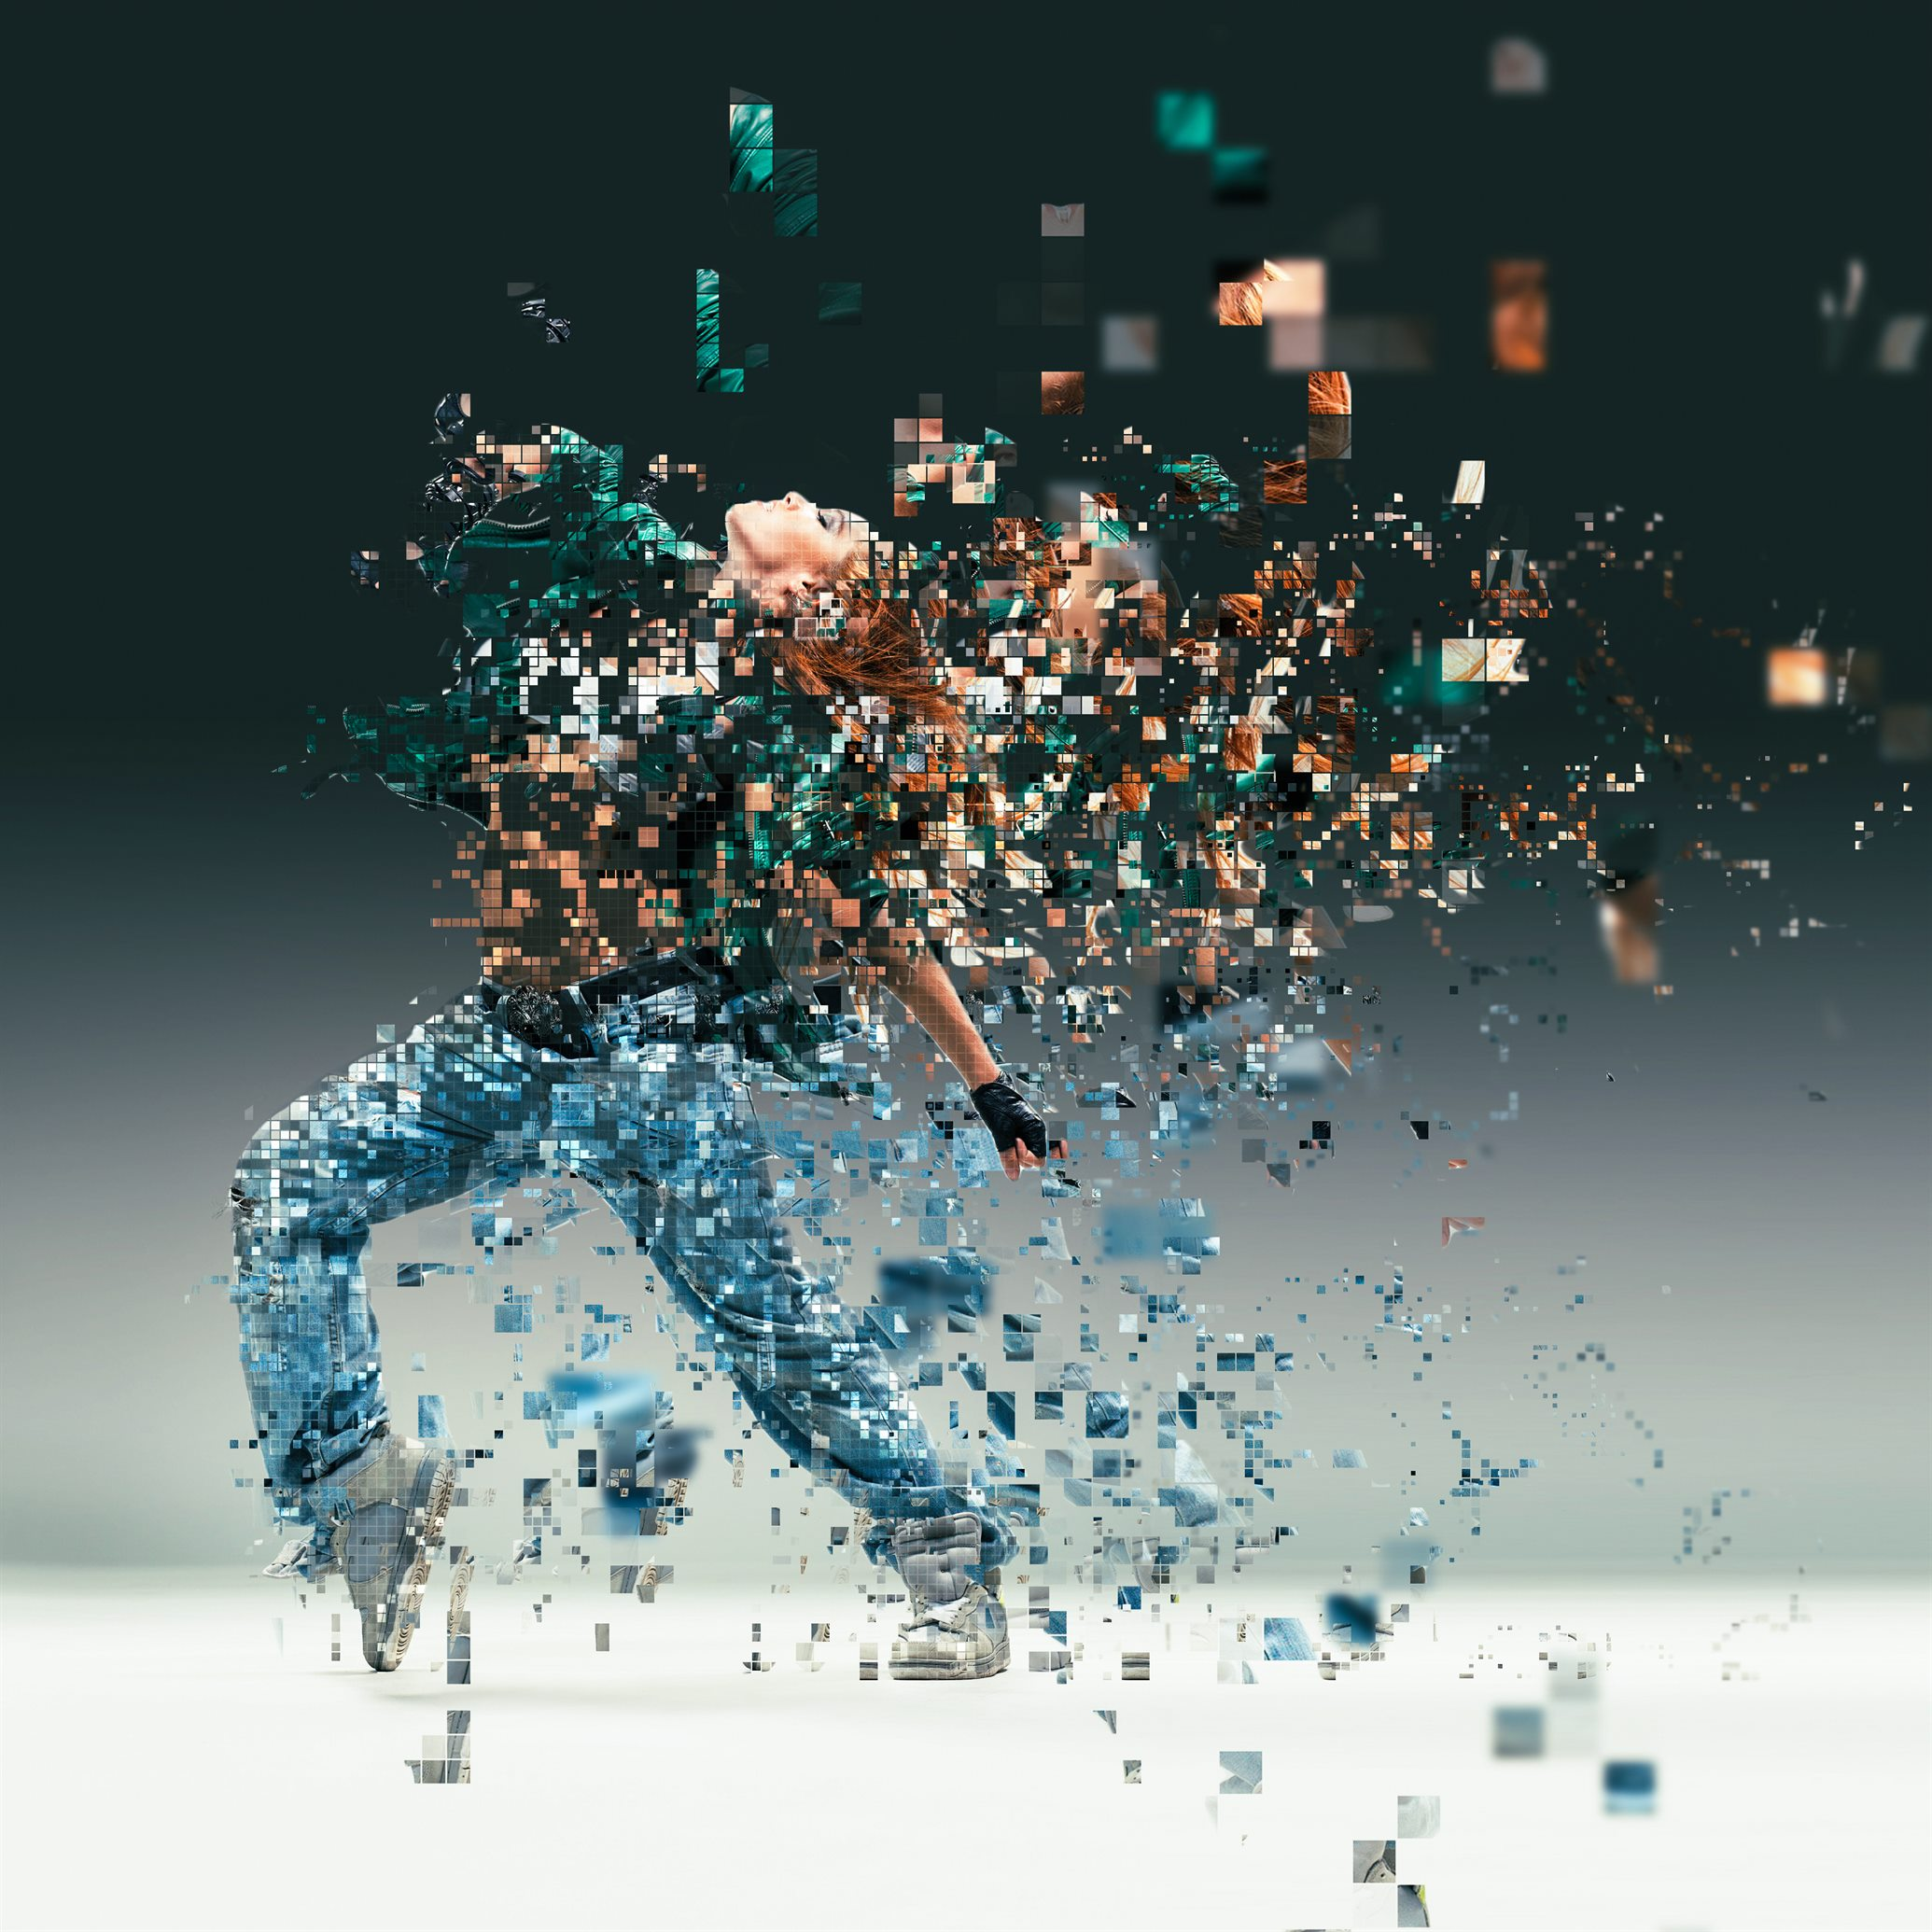 Pixelated Photoshop Action By Sevenstyles